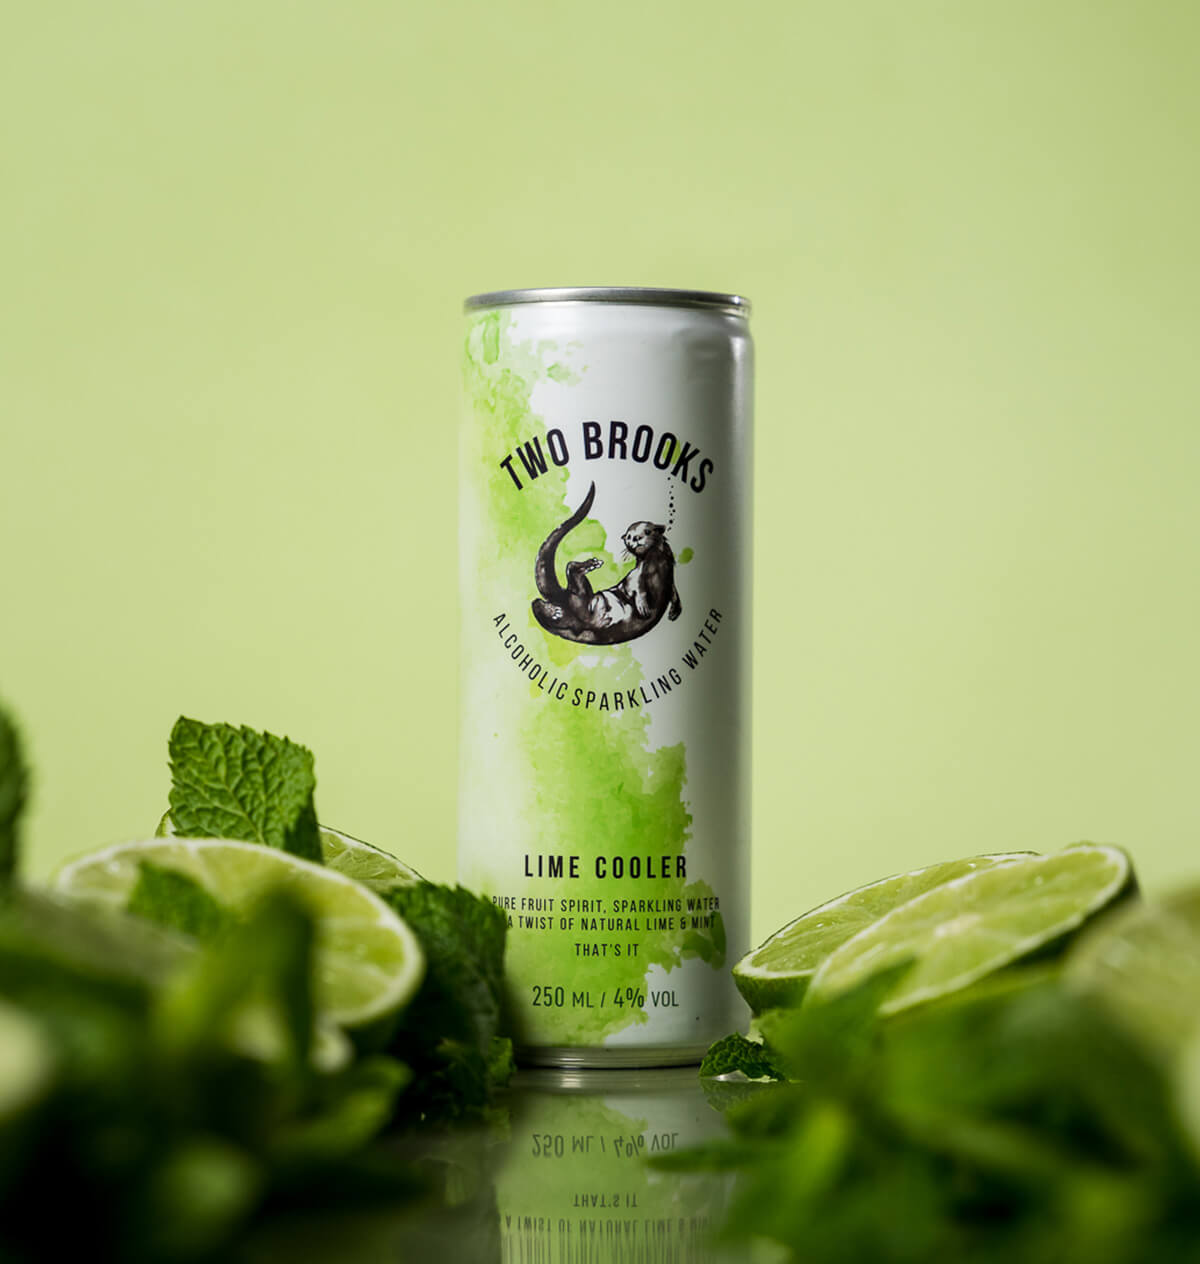 Limecooler Two Brooks